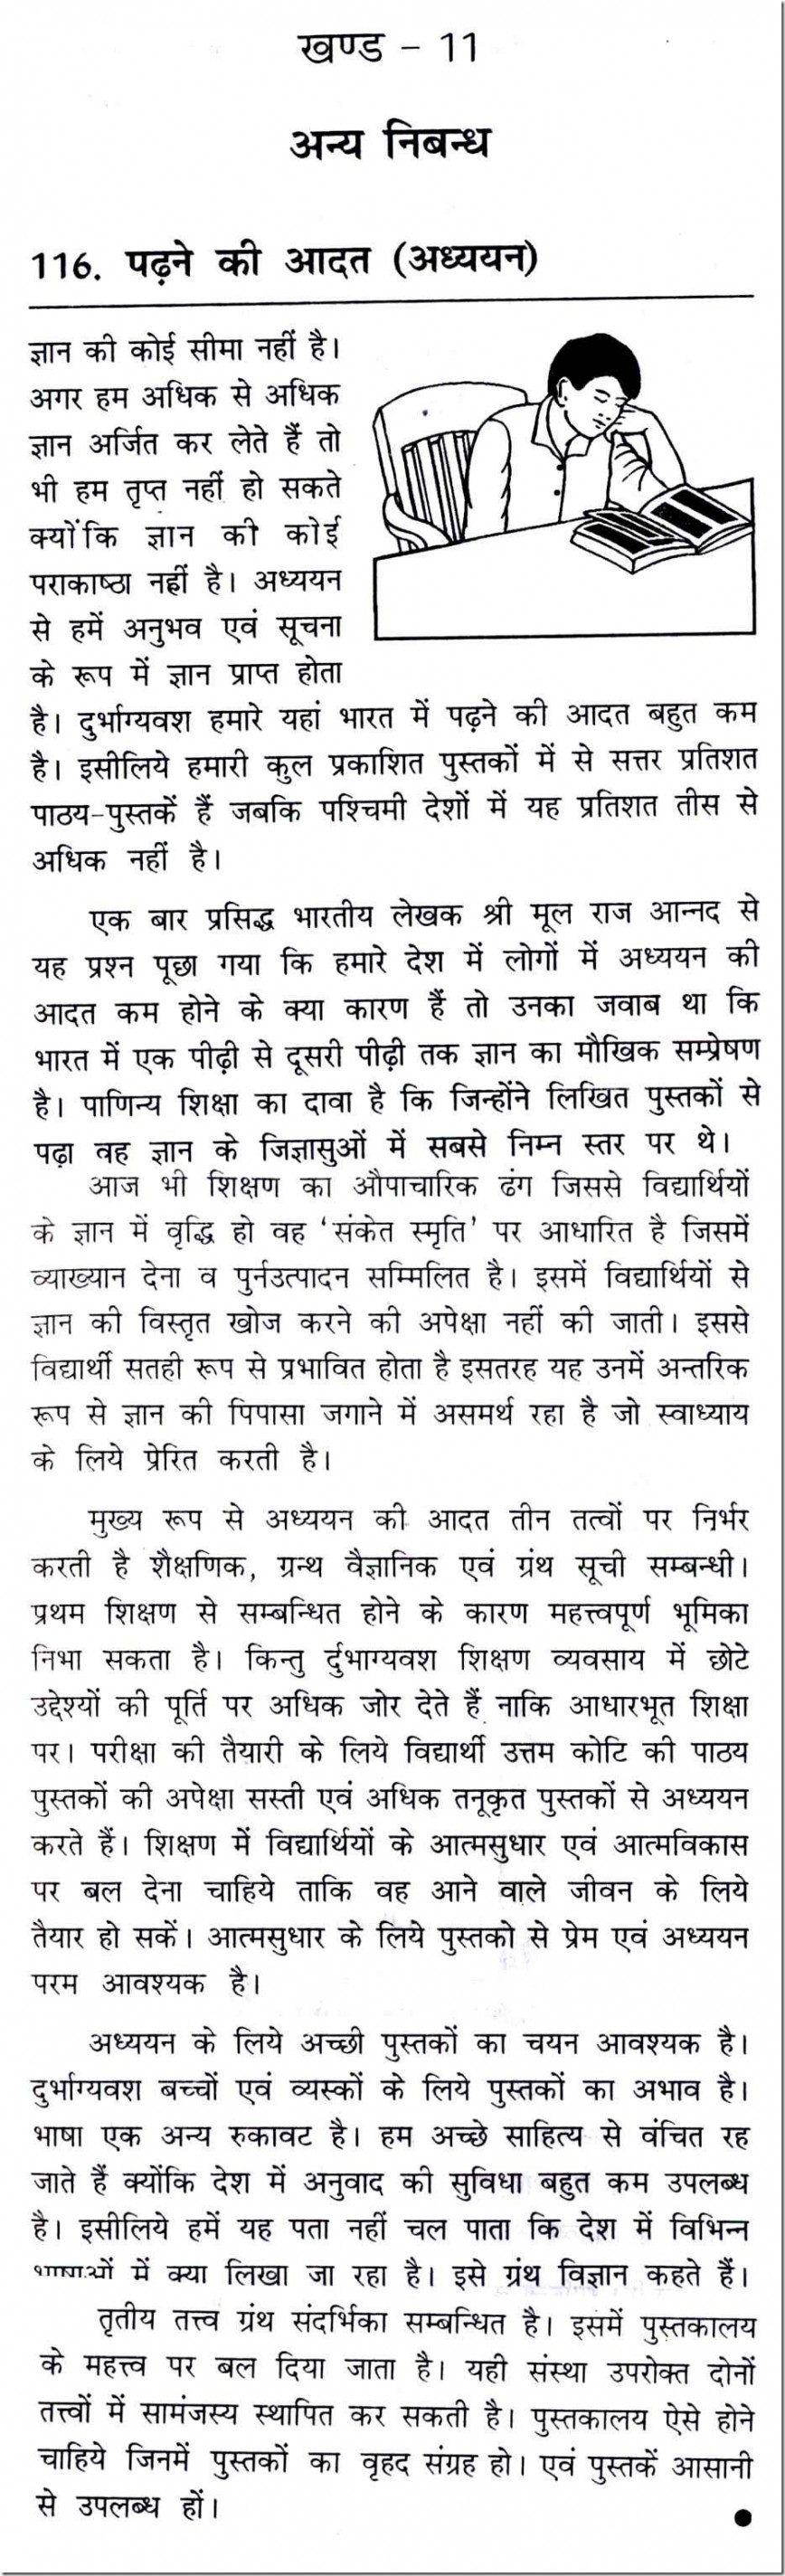 016 Good Habits Essay In Hindi 10118 Thumb Exceptional Healthy Eating Reading Is A Habit 868